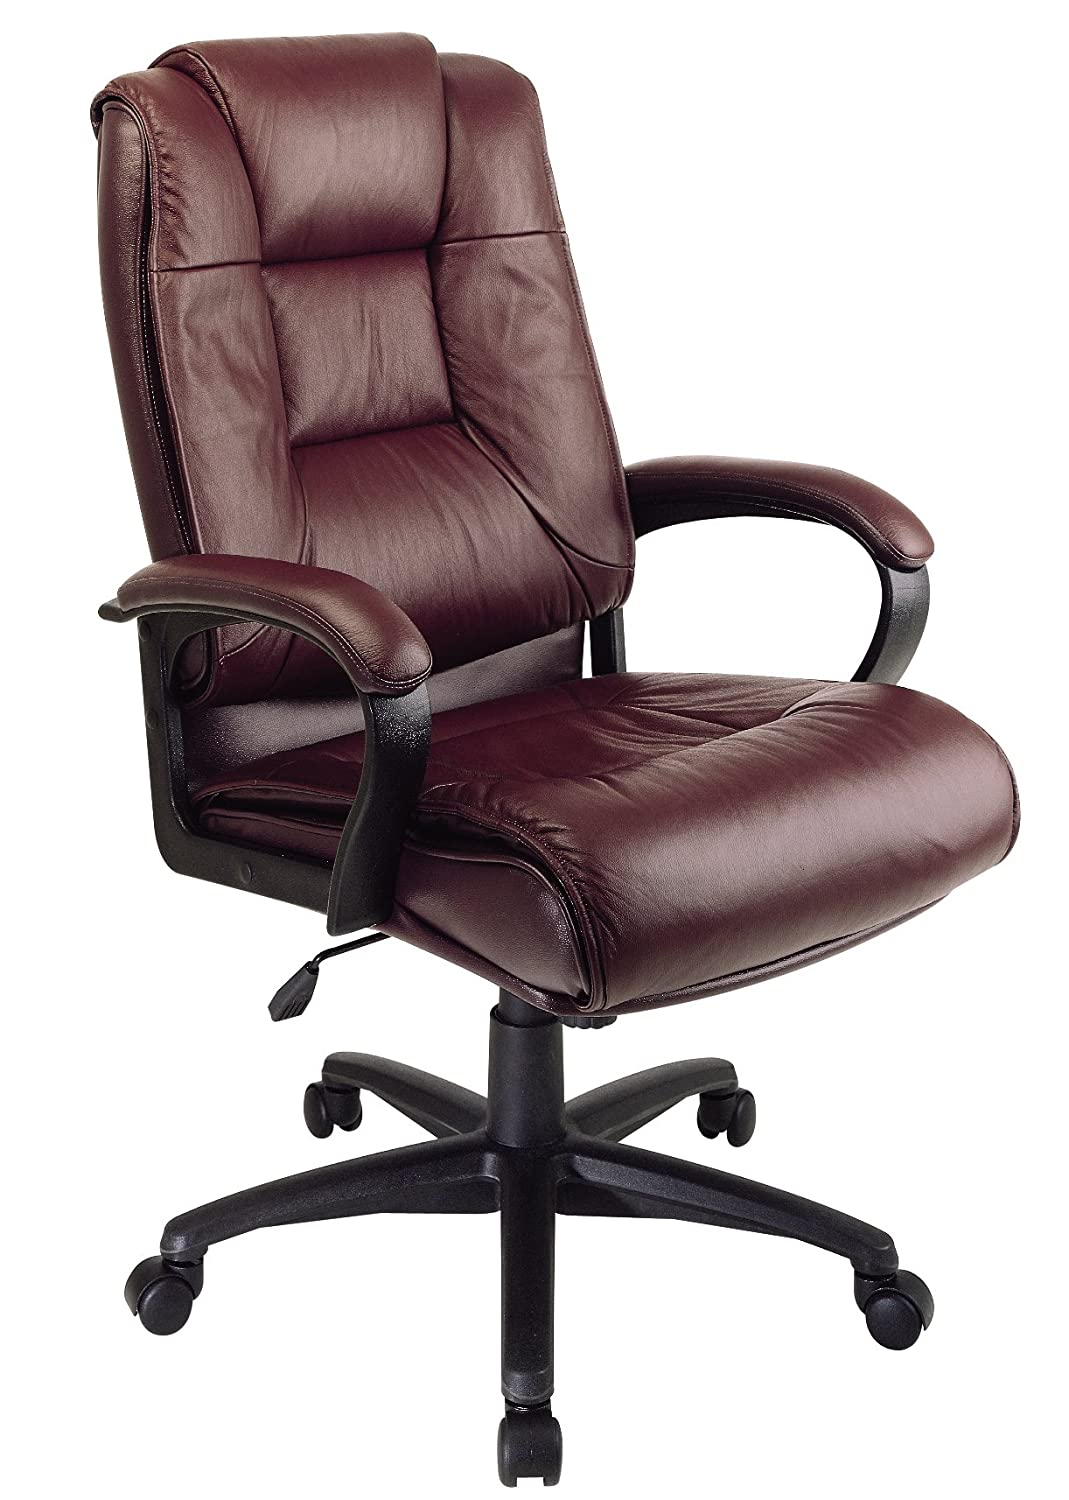 Office Star EX5162-4 Leather High-Back Office Chair, Burgundy